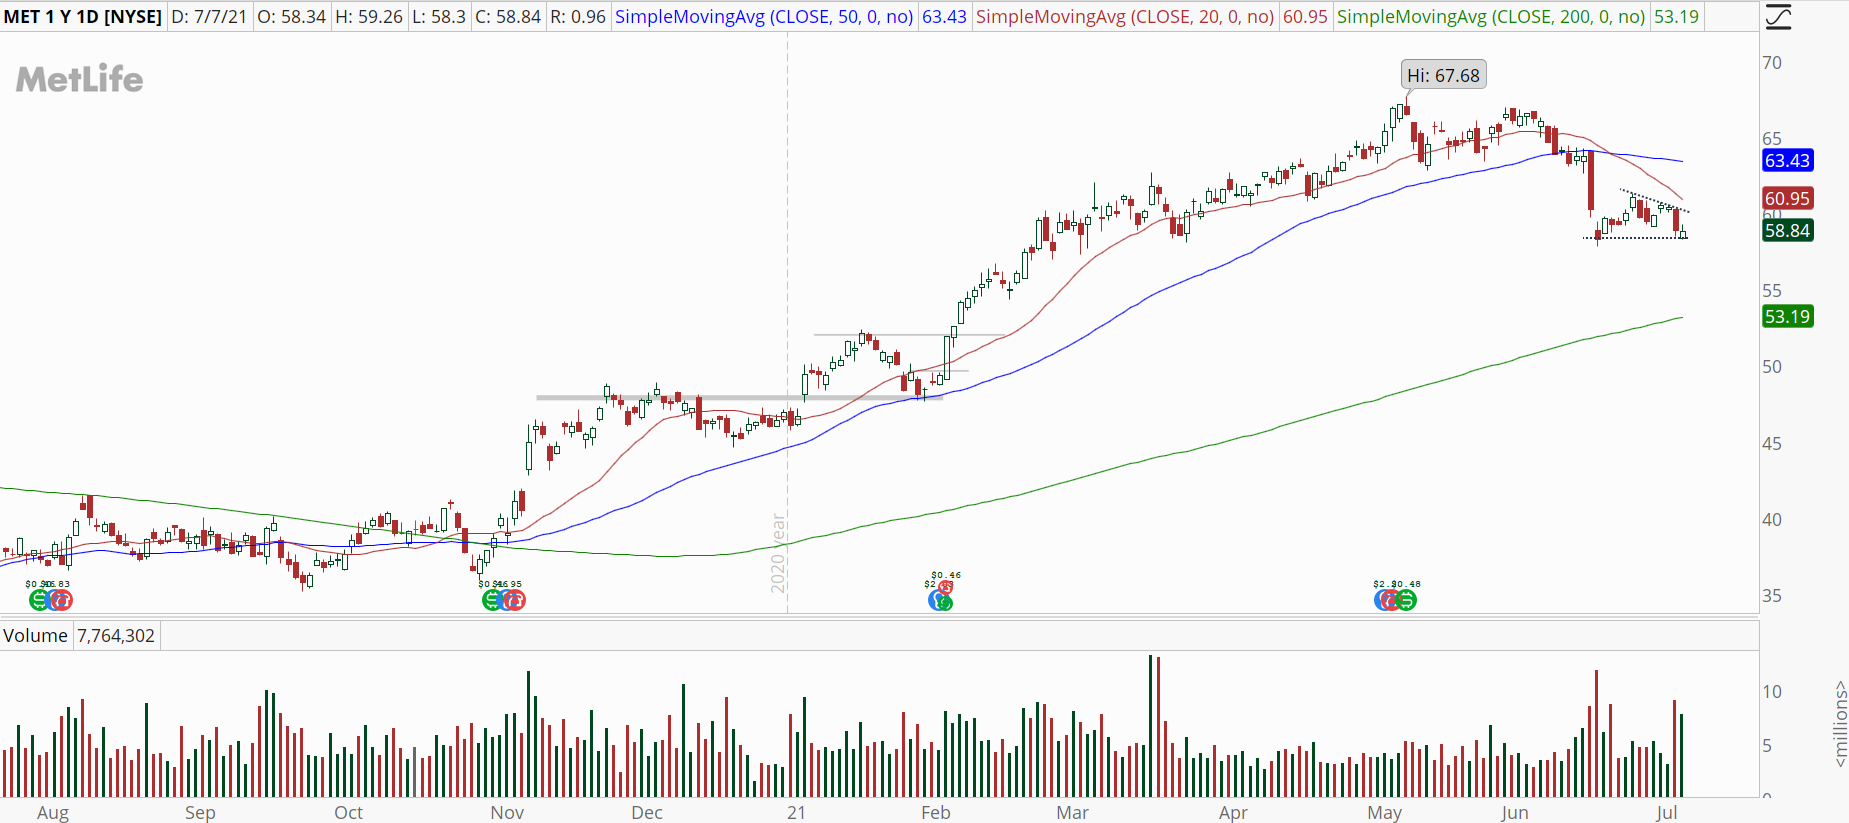 Metlife (MET) chart with downtrend